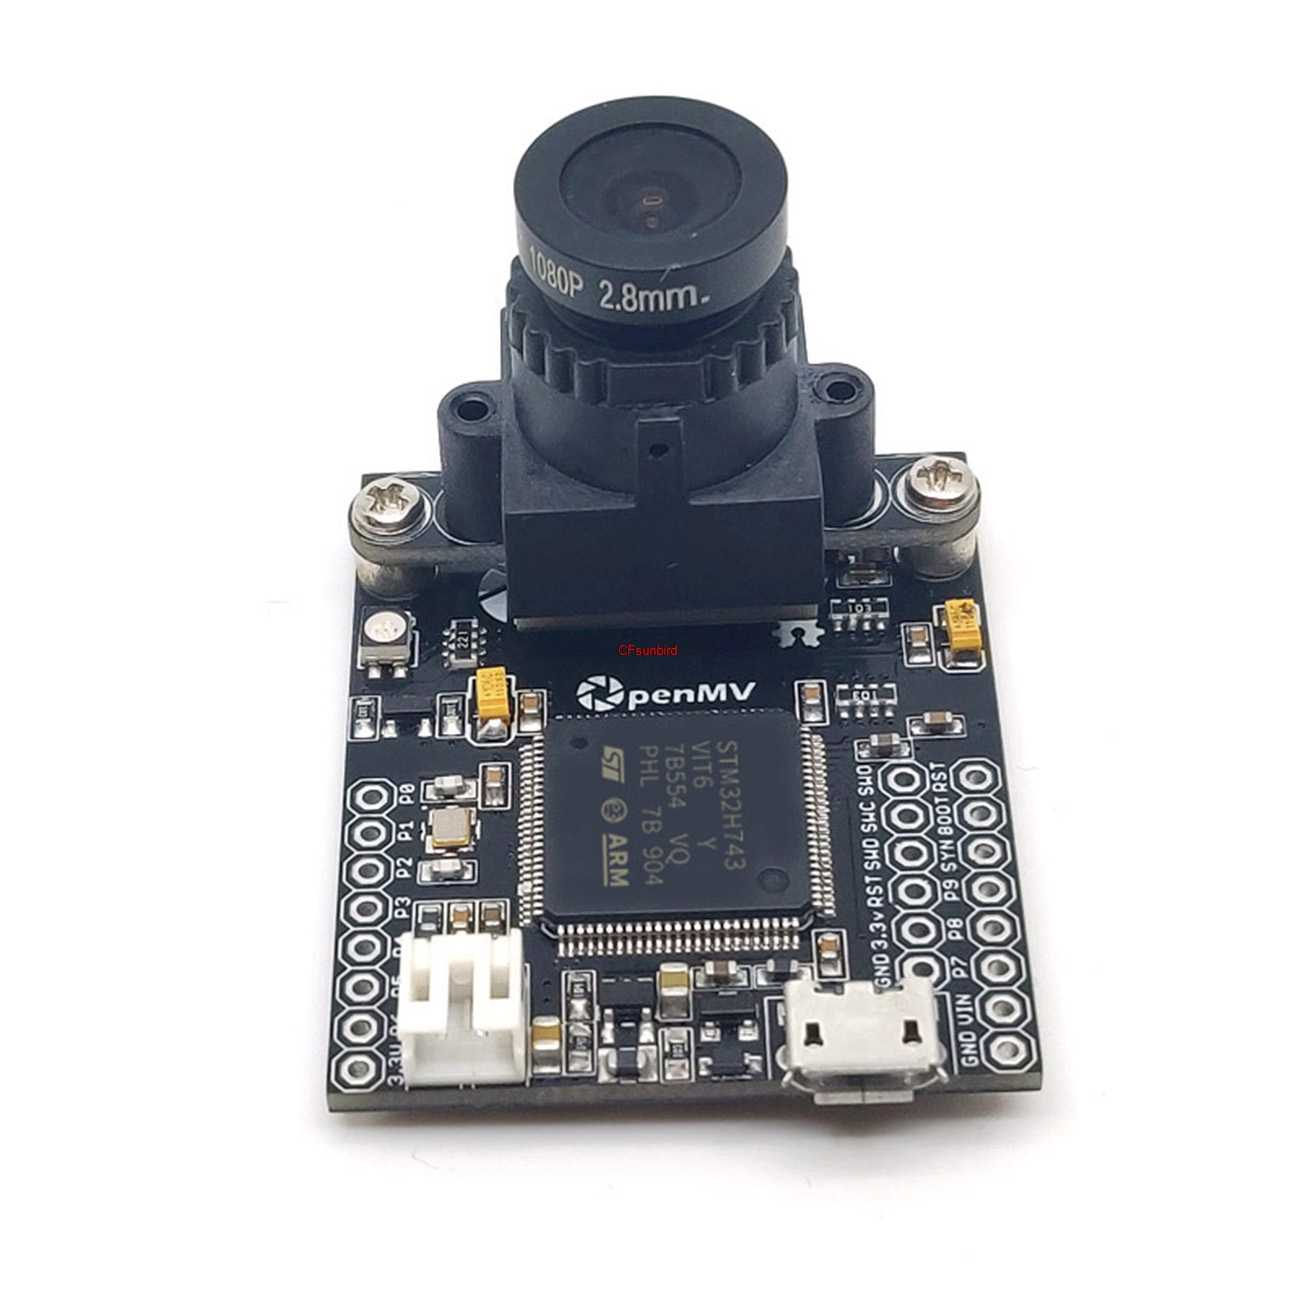 Details about  /Global Shutter High Frame Rate For OpenMV4 H7 3 M7 Camera Module Motion Shooting